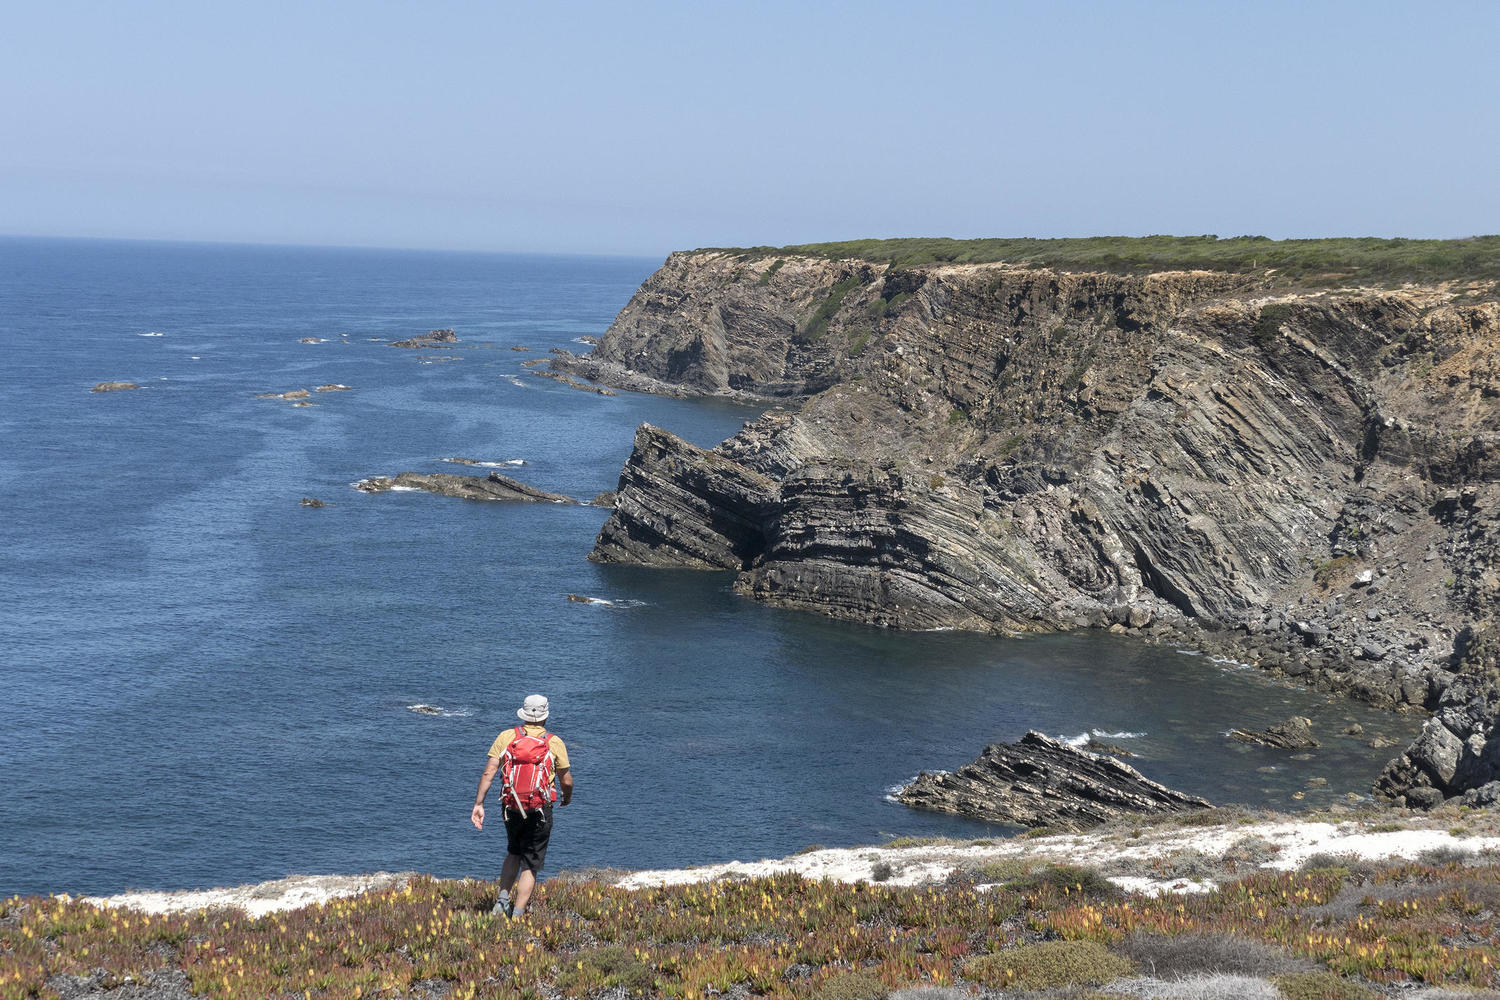 Walking the Rota Vicentina trail in Alentejo